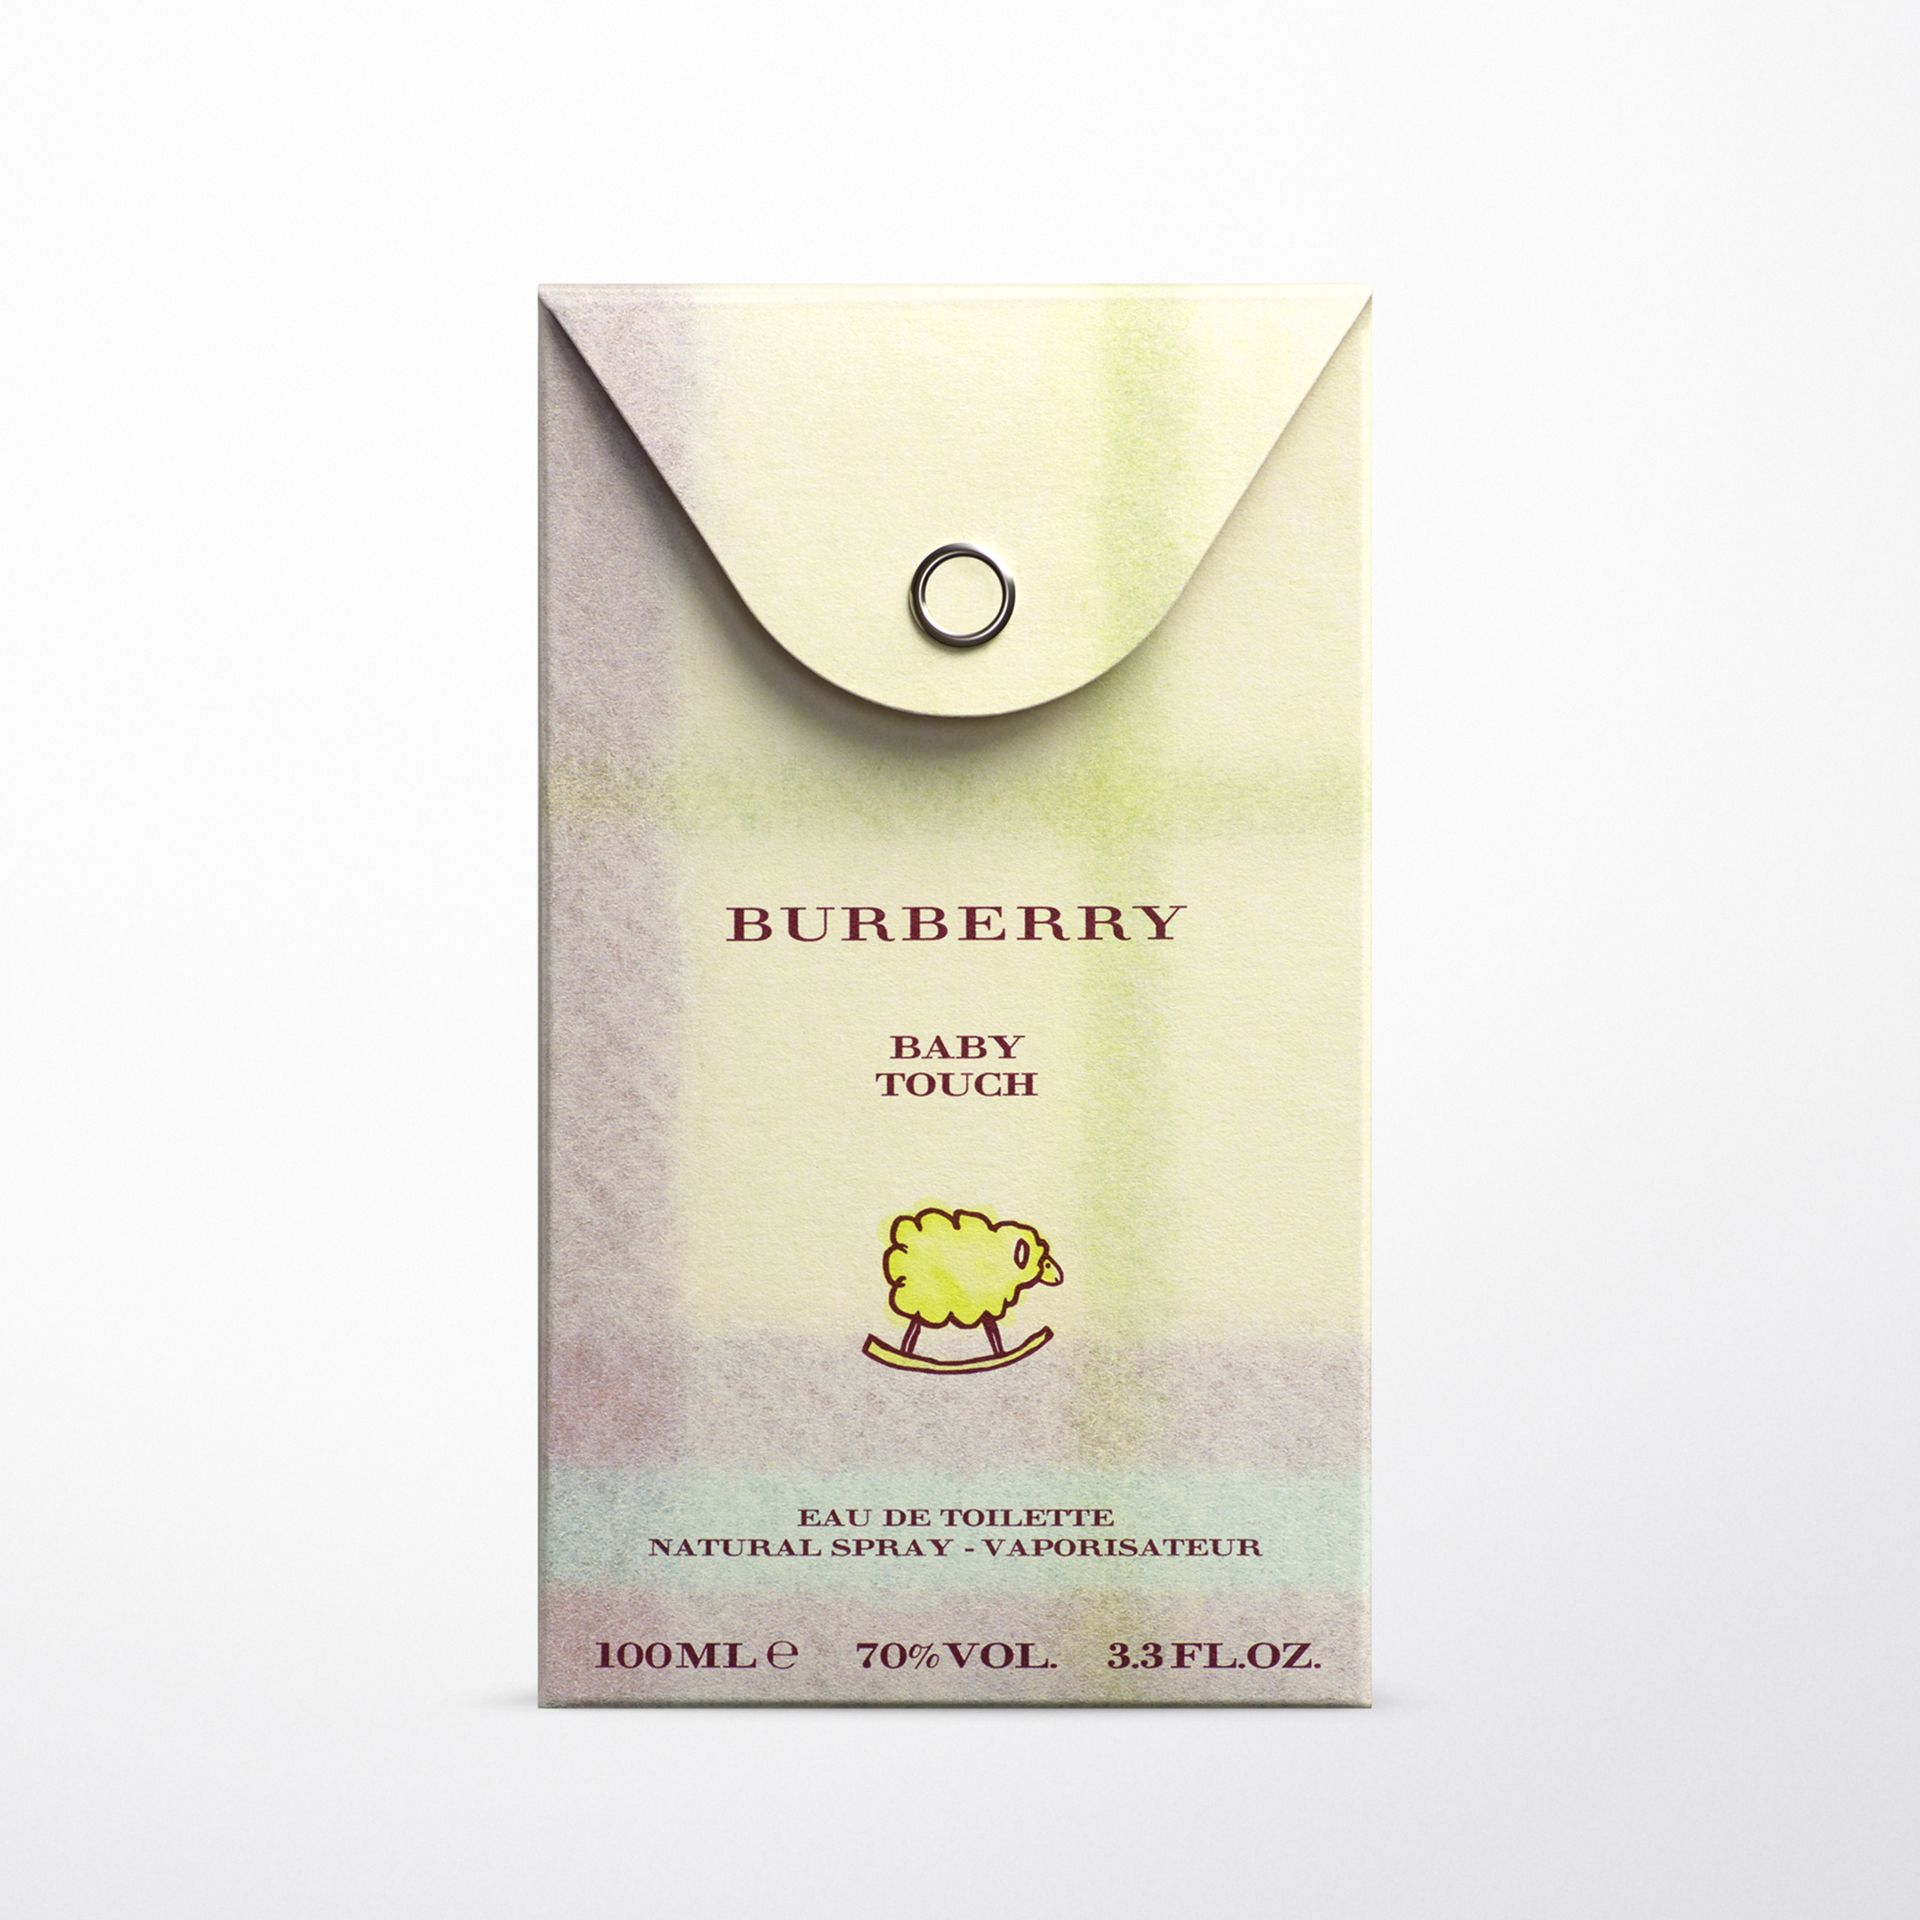 Burberry Baby Touch 100ml - gallery image 3